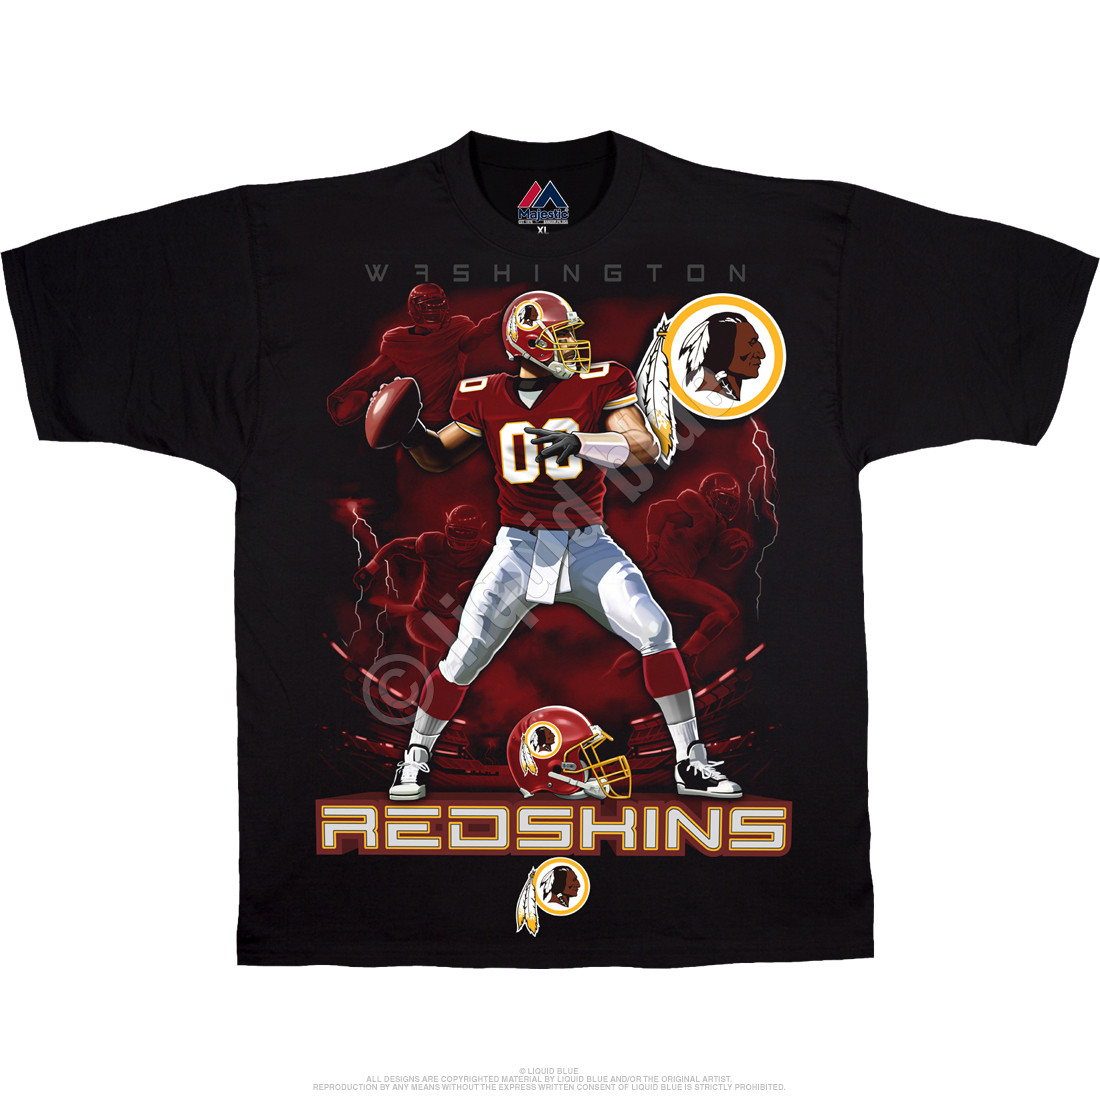 e4a619c29cc NFL Washington Redskins Quarterback Black T-Shirt Tee Liquid Blue